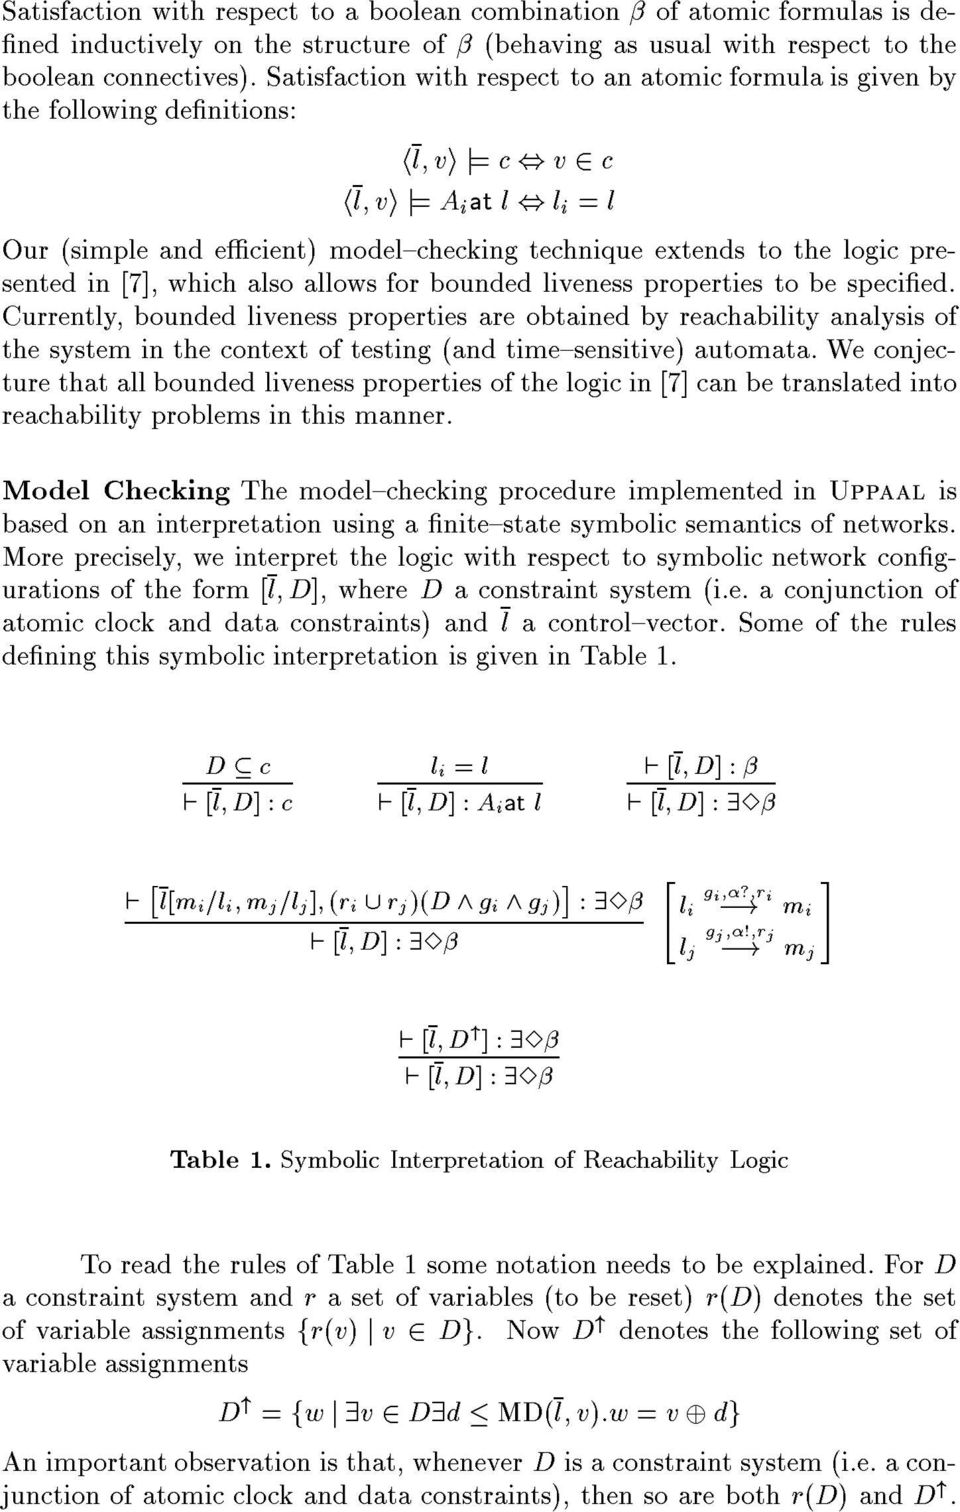 logic presented in [7], which also allows for bounded liveness properties to be specied.